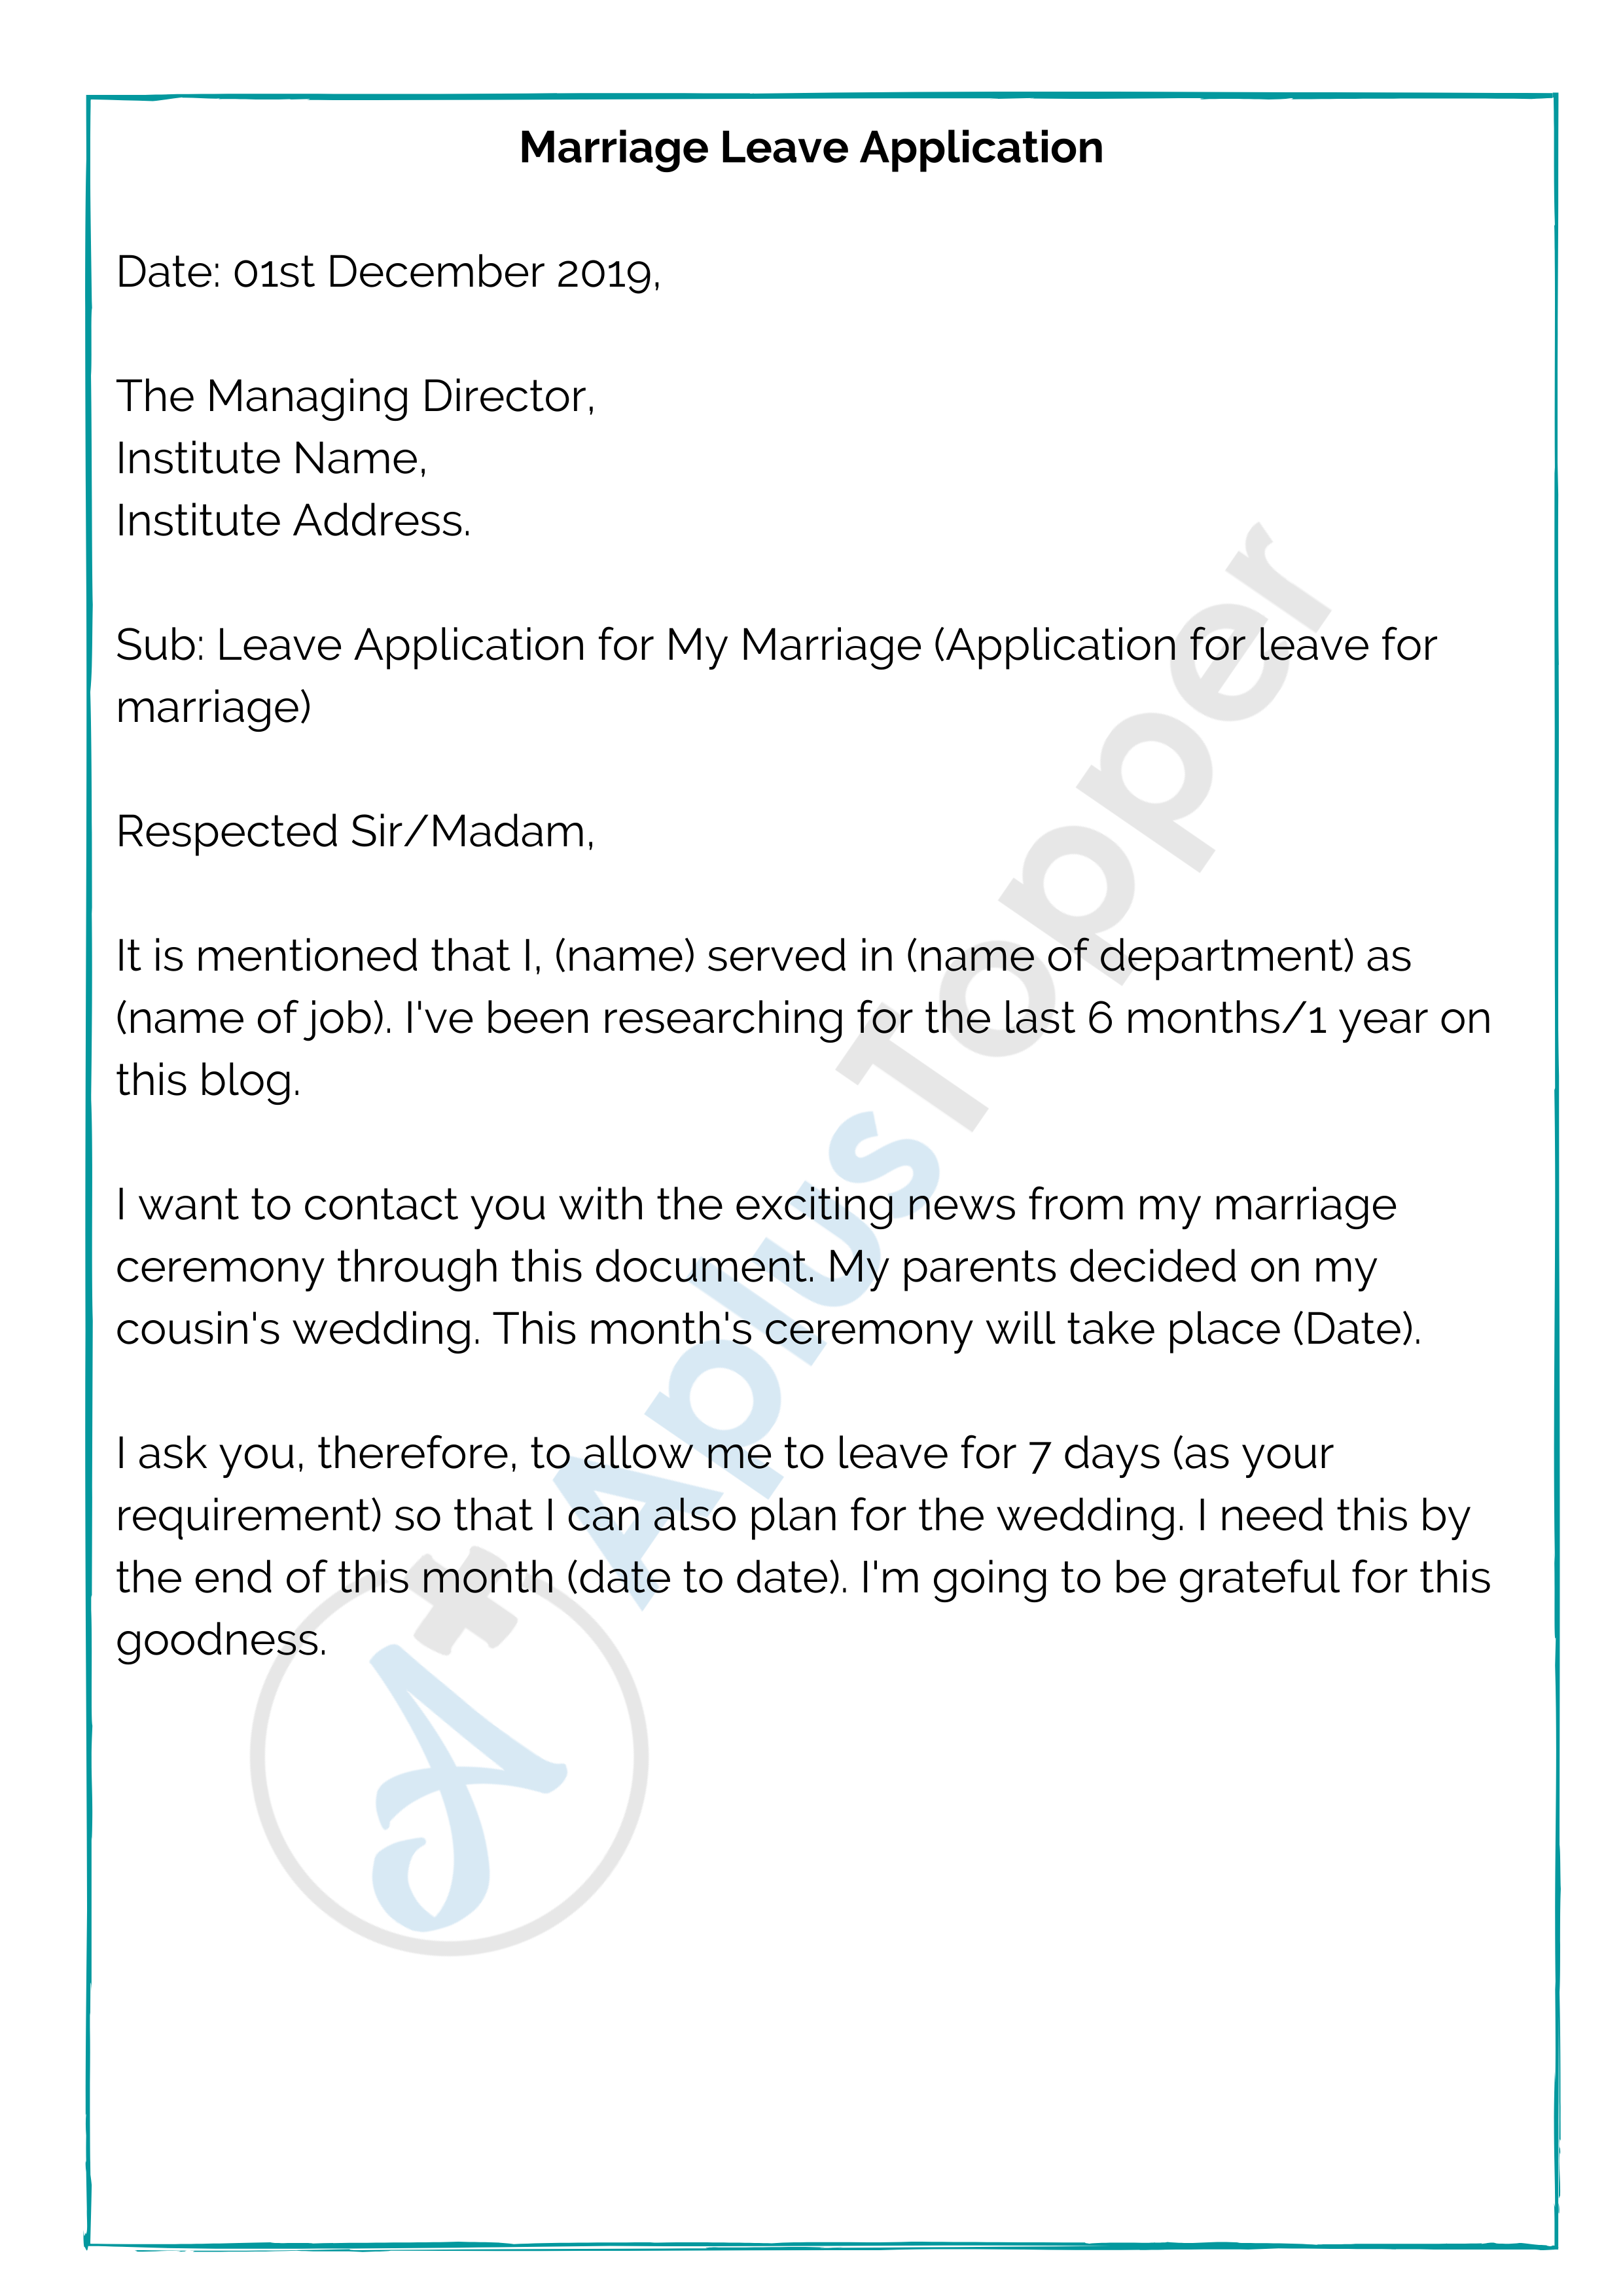 Marriage Leave Application